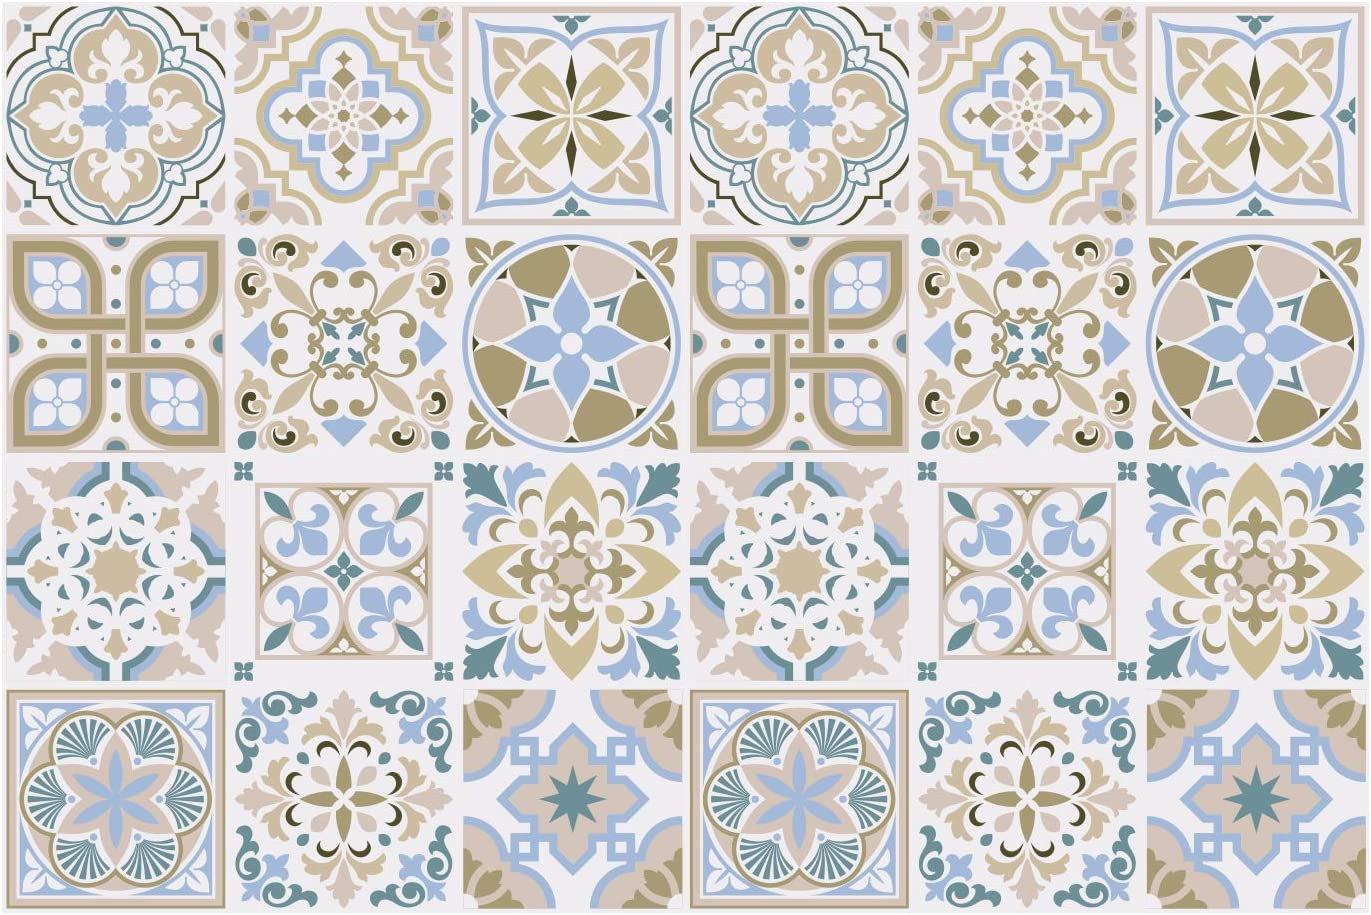 Amazon Com 24pcs 6 Peel And Stick Vinyl Backsplash Tiles Stickers Tile Paint Removable Waterproof Self Adhesive Decals Vinyl Home Kitchen Bathroom Spring Easter Decoration Light Sapphire And Parchment Kitchen Dining